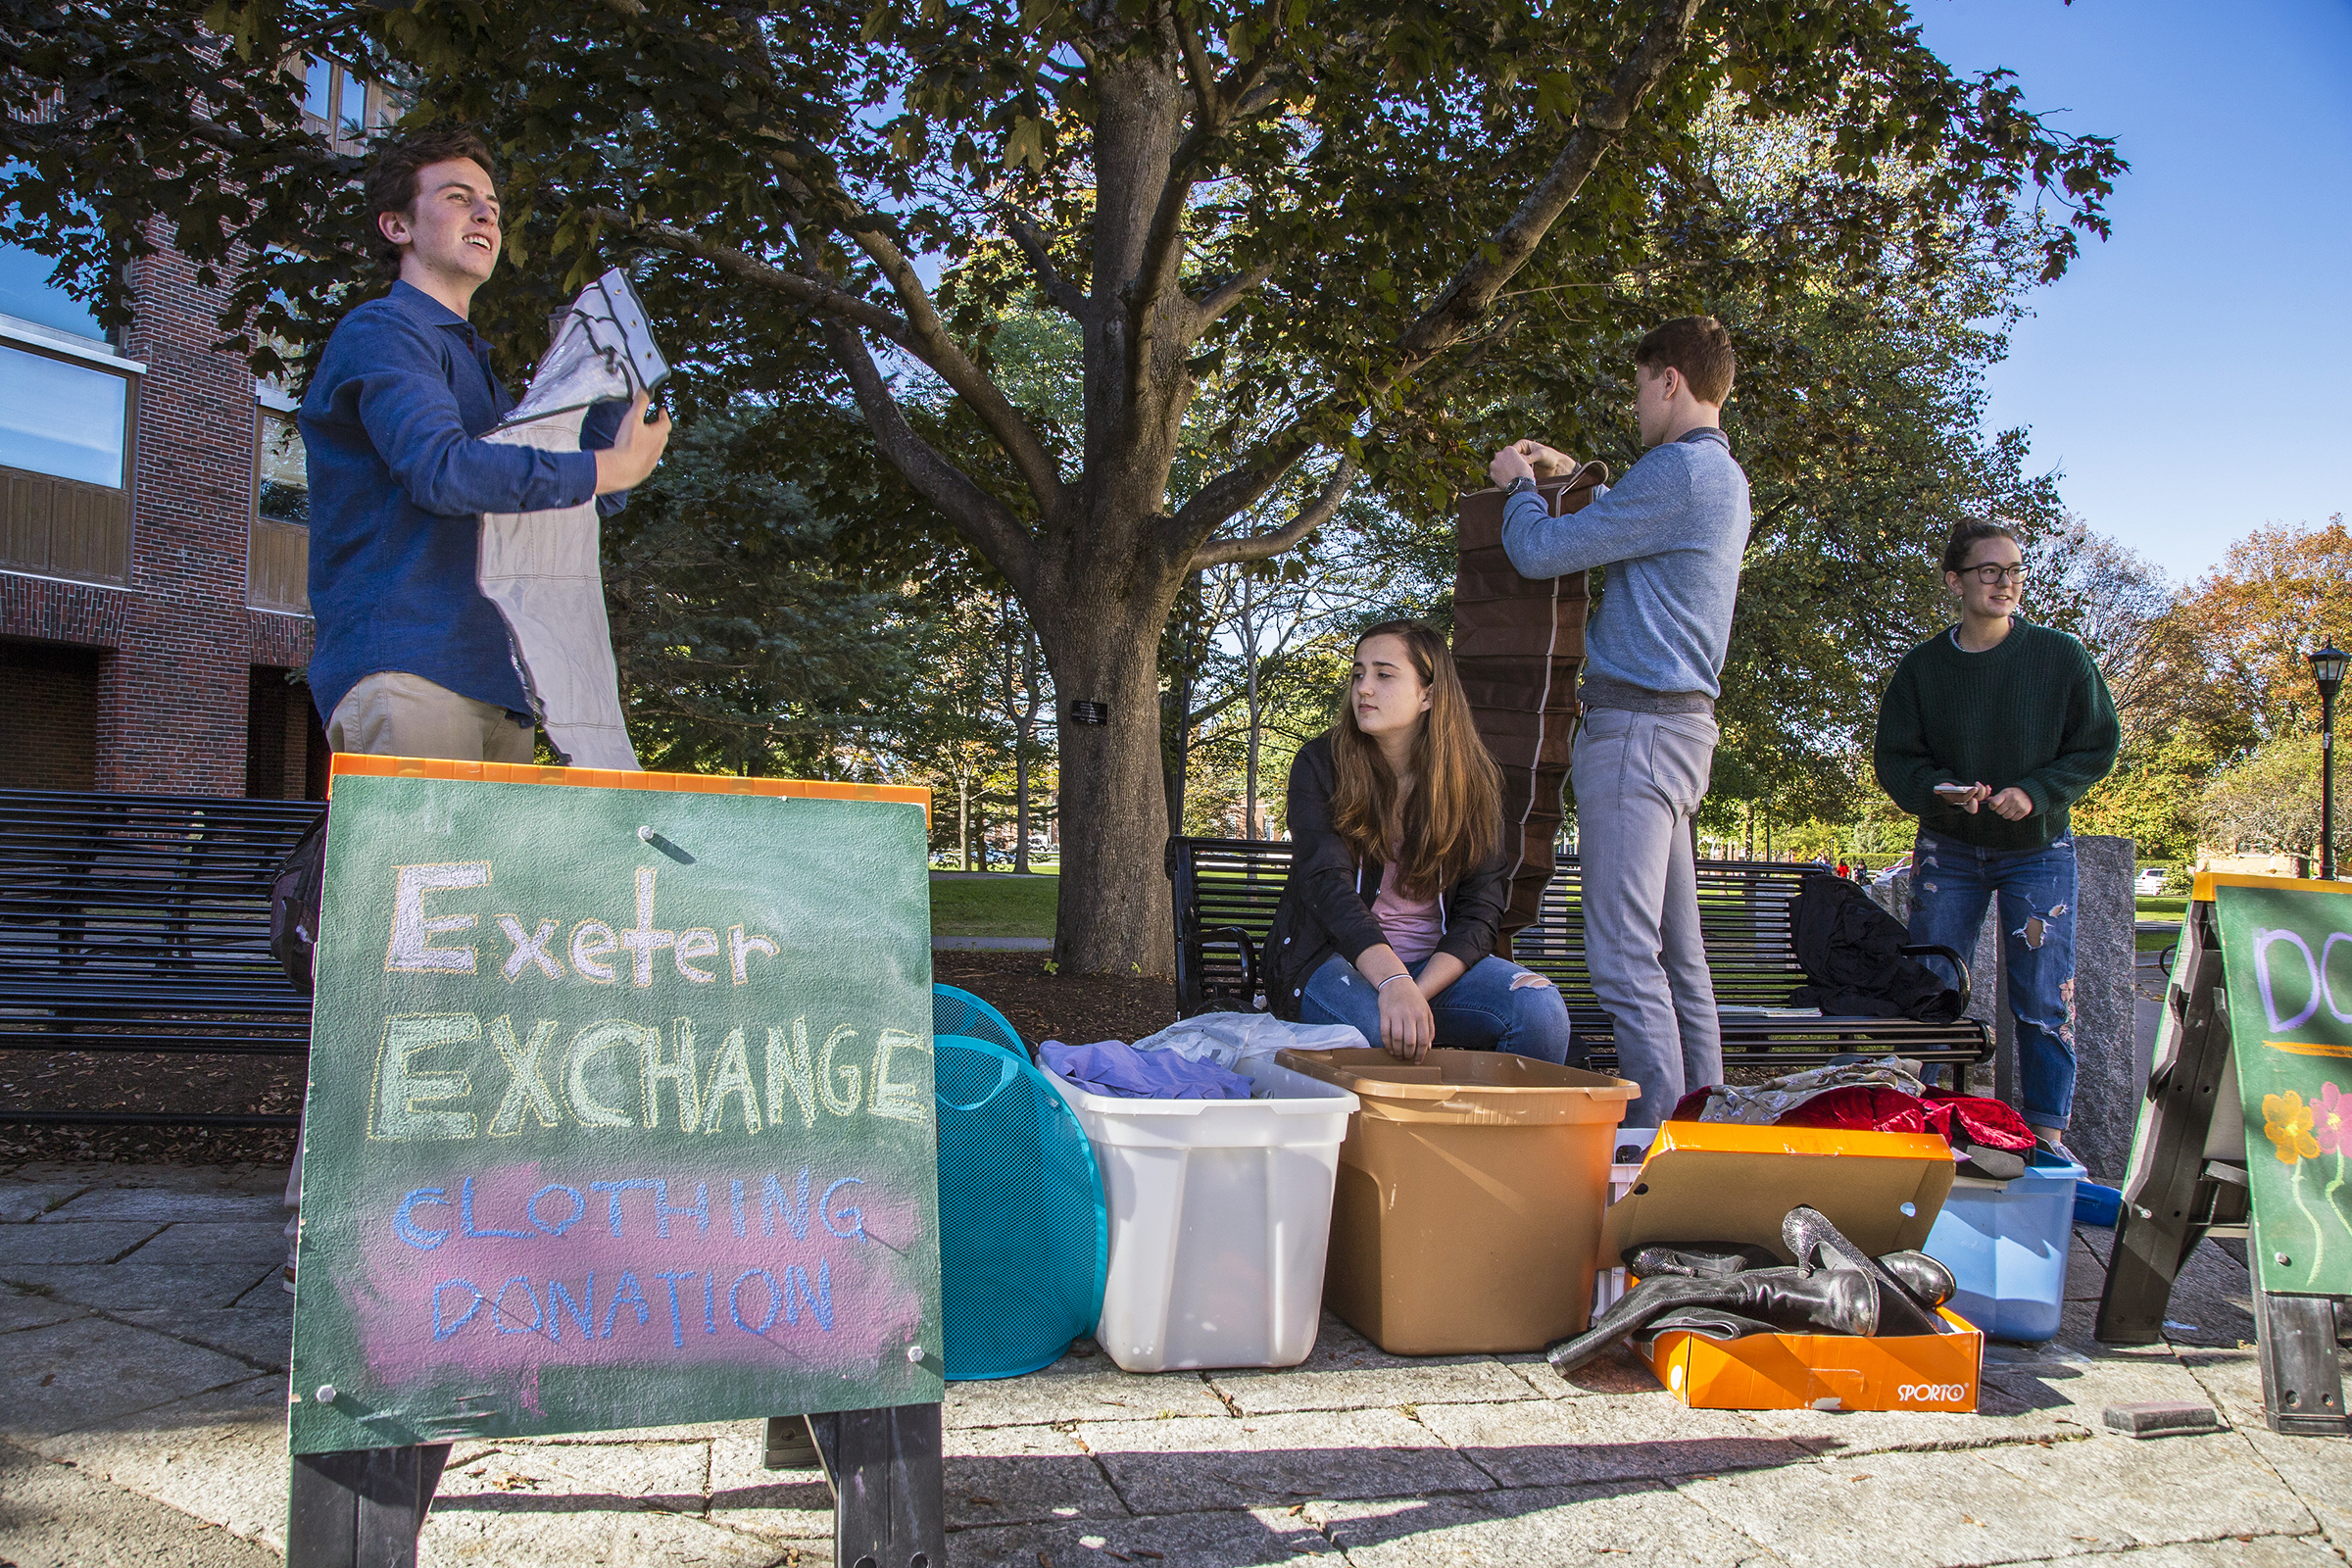 Exchange gathers used clothing at Exeter.